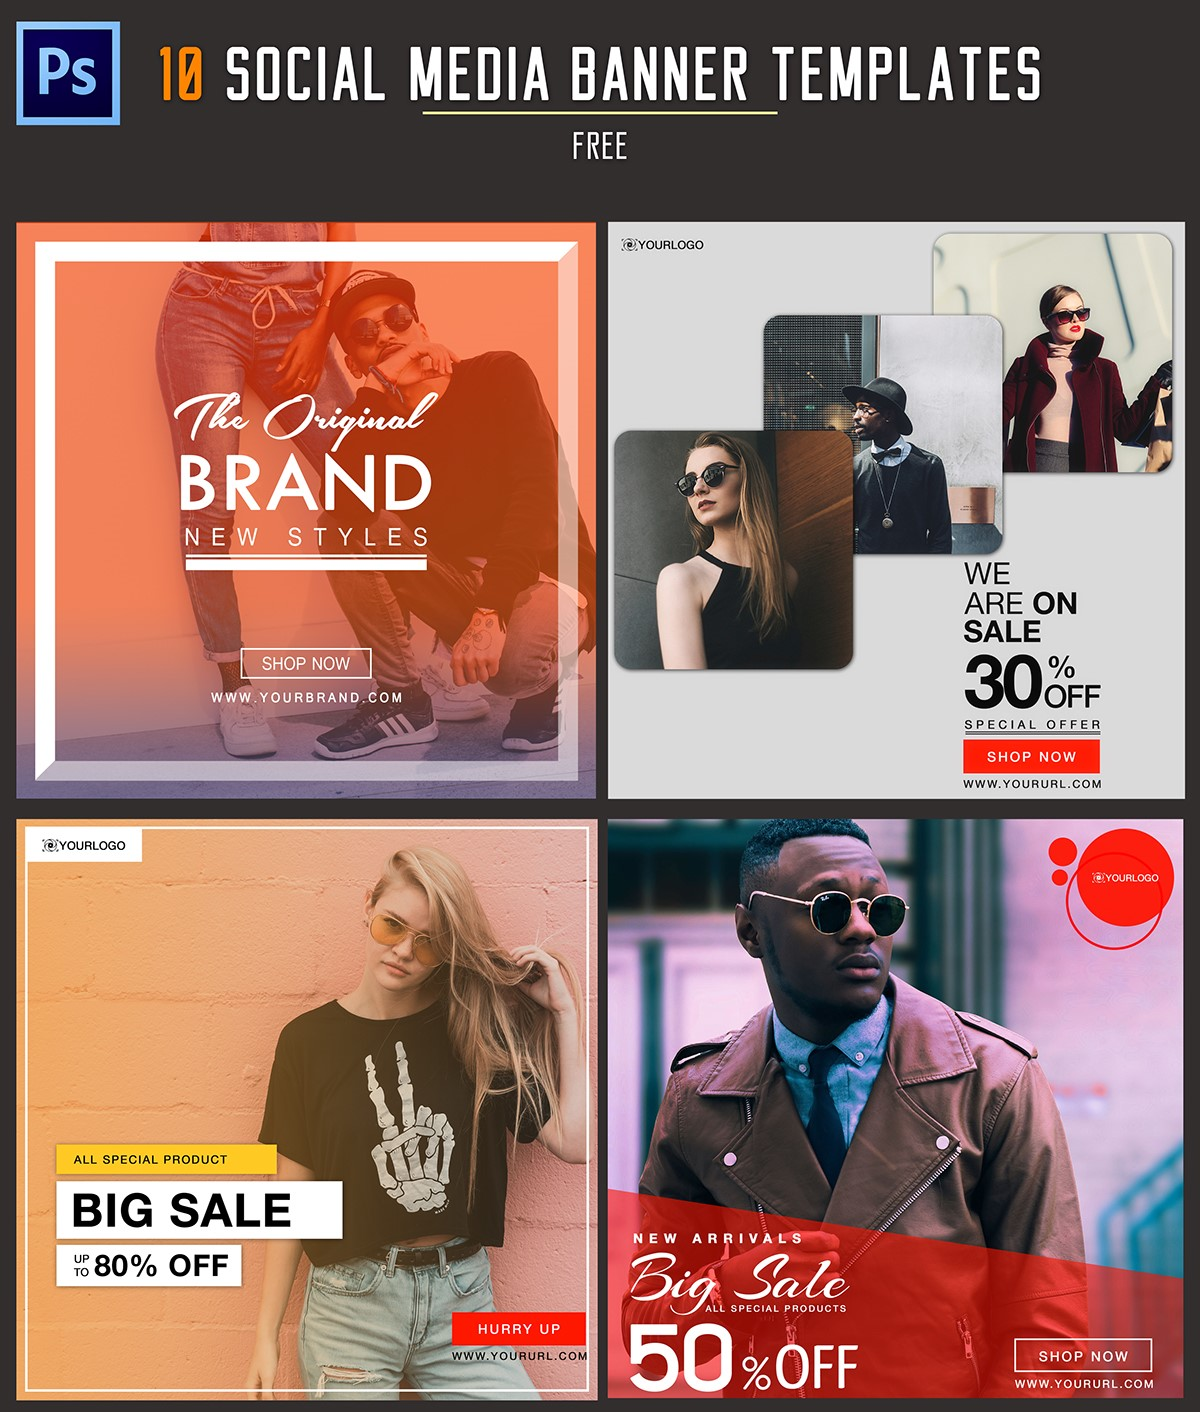 39. Free Instagram Banners Templates PSD